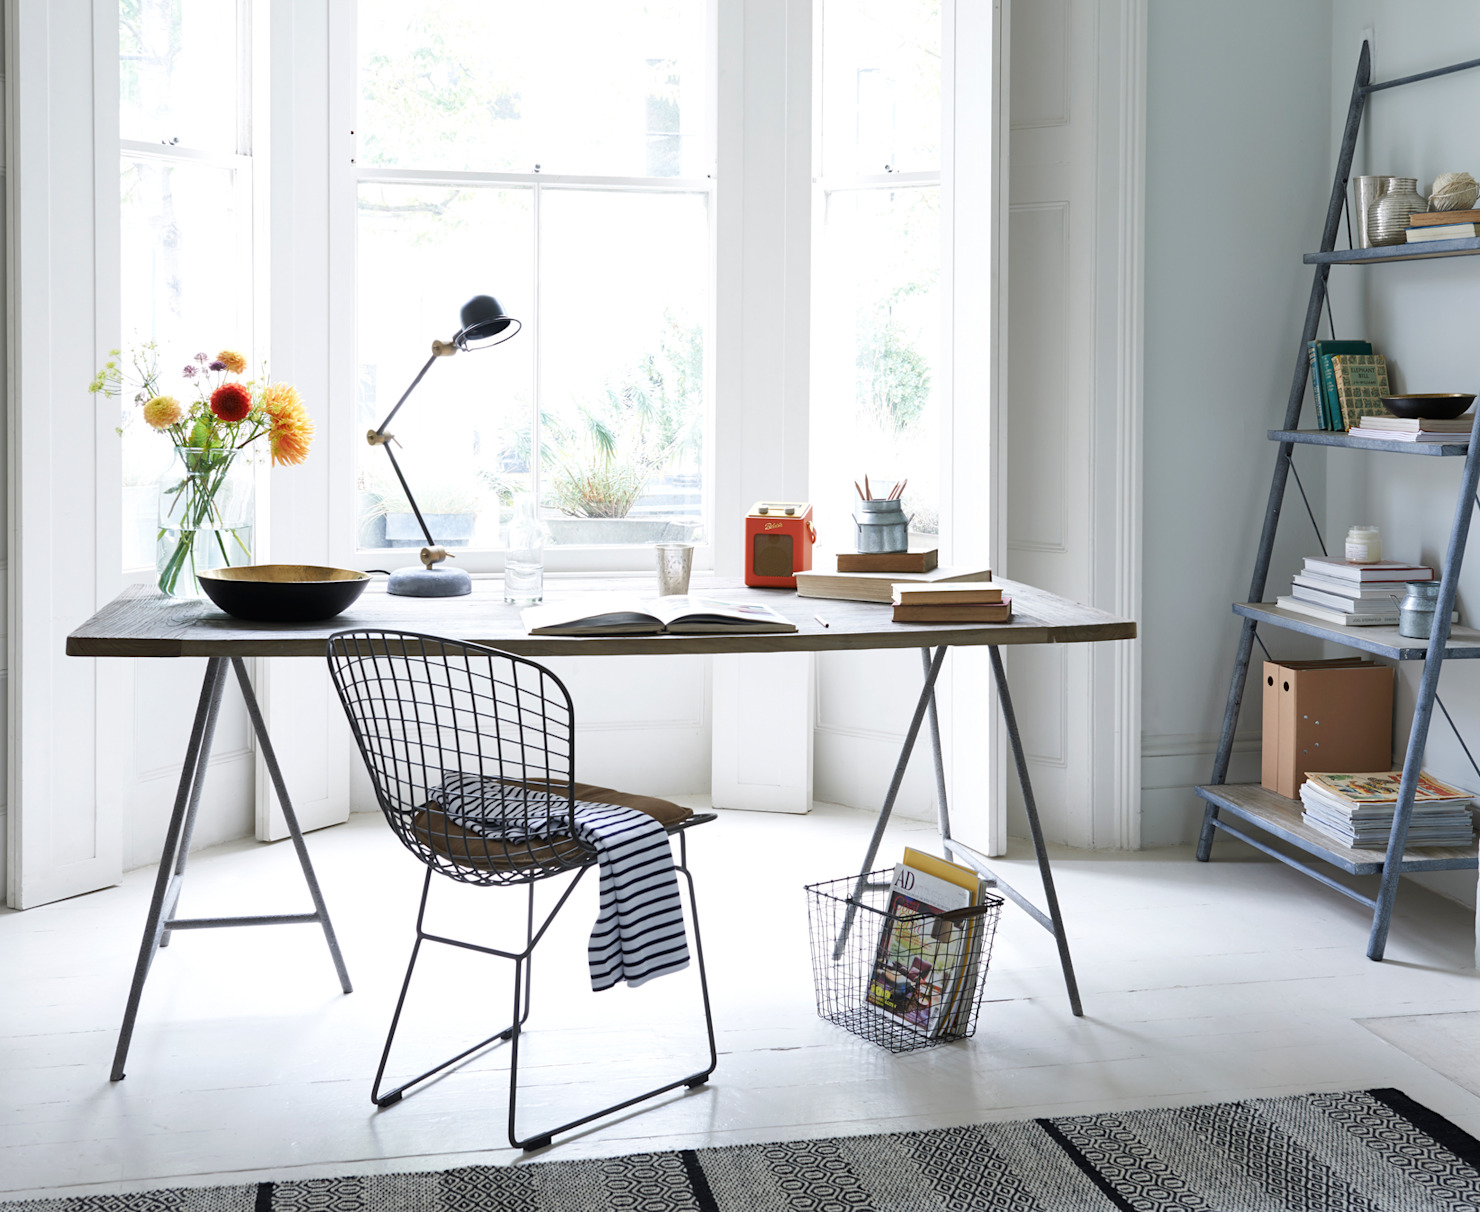 9 utterly unique desks for your home